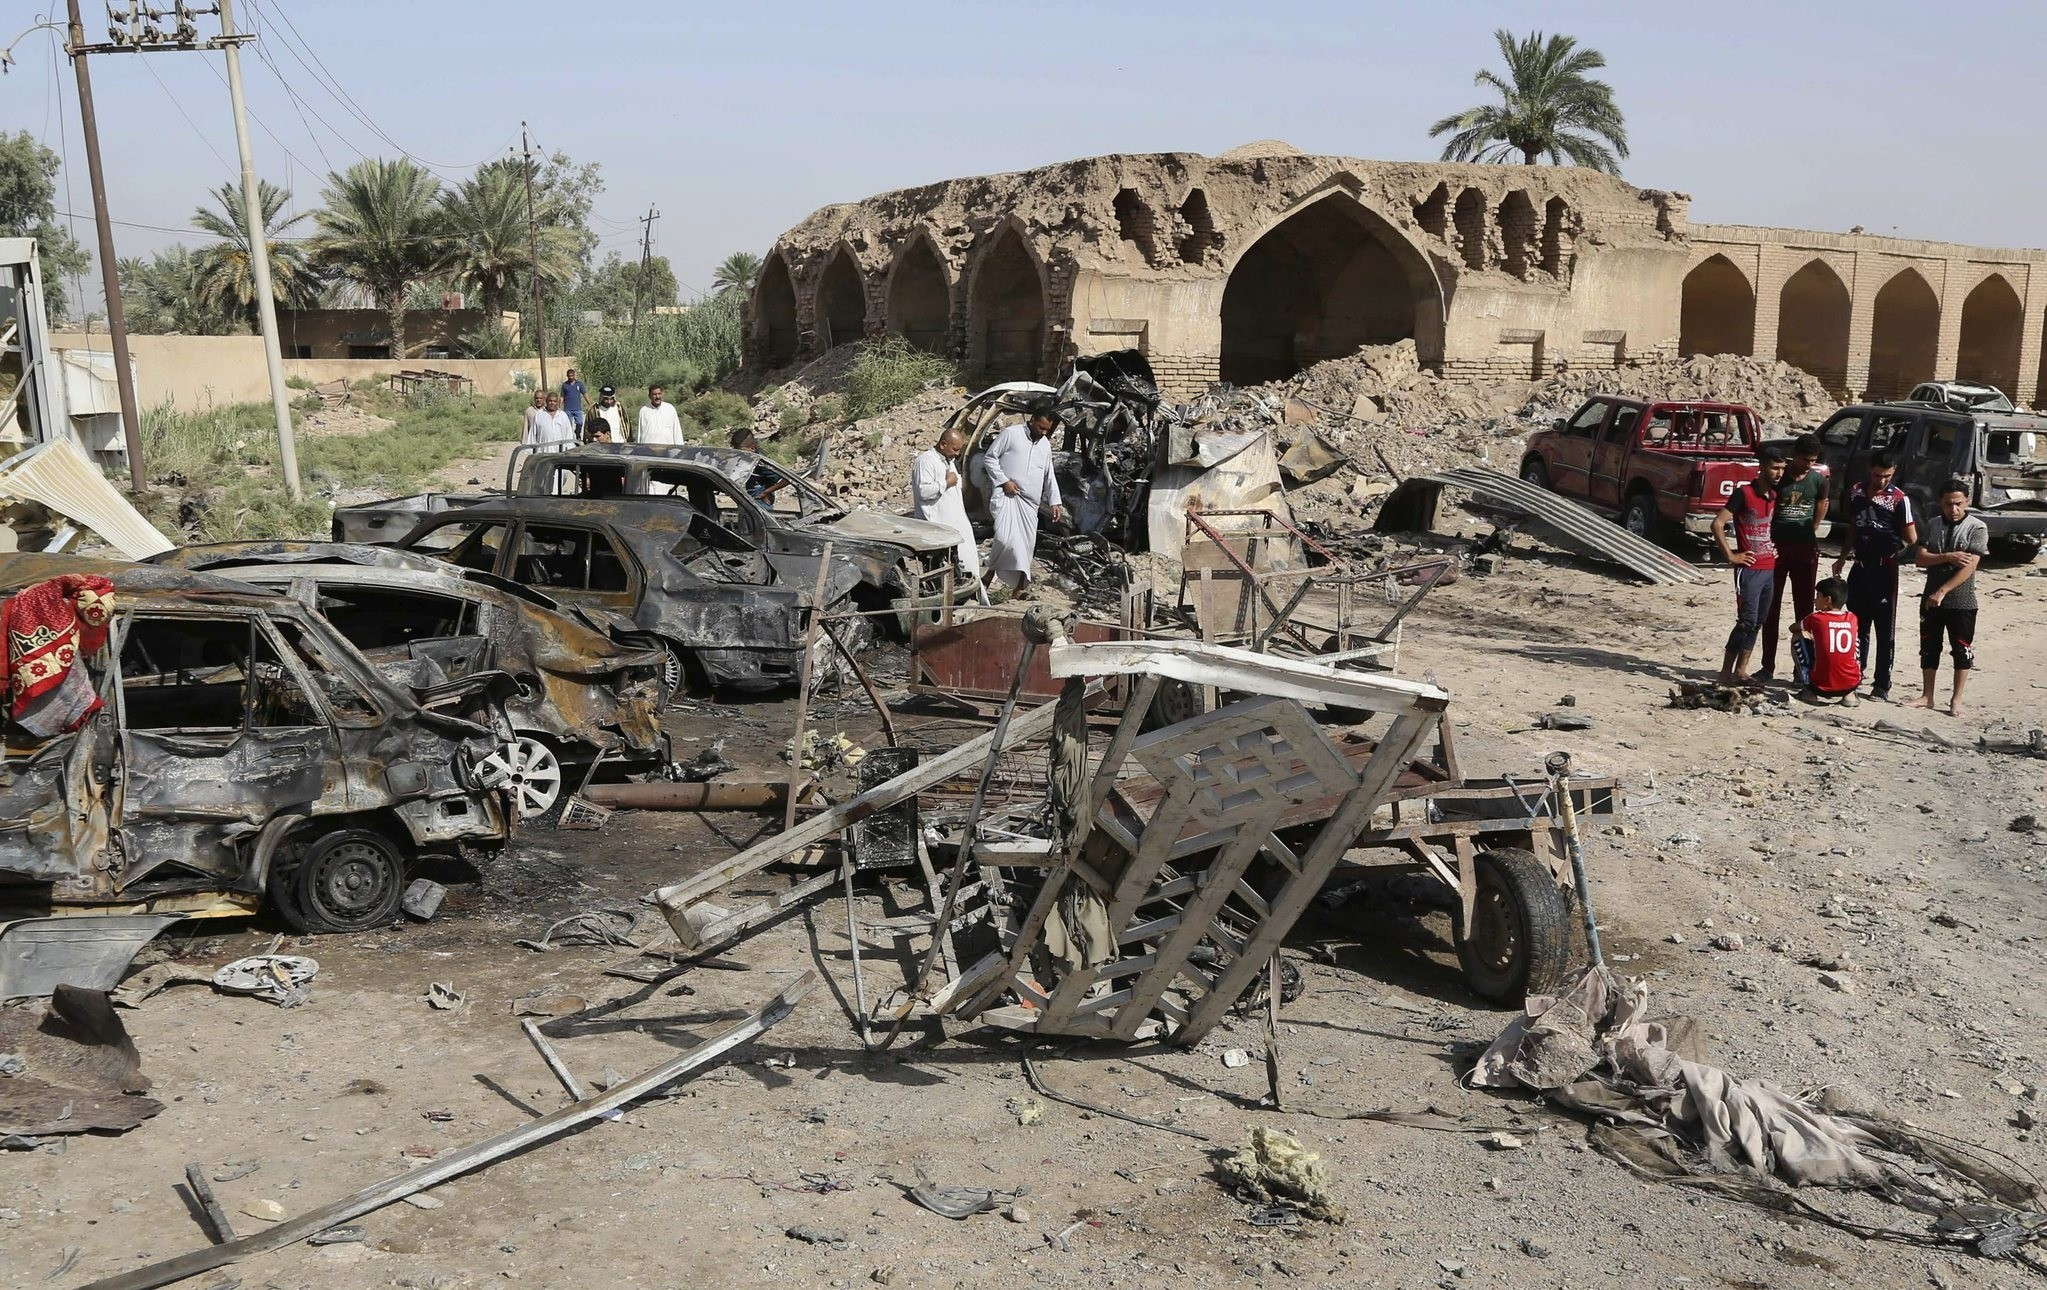 Civilians inspect the scene of a deadly friday night suicide car bombing at a busy market in Khan Beni saad, about 20 miles (30 kilometers) northeast of Baghdad, Iraq, Saturday, July 18, 2015. (AP Photo)